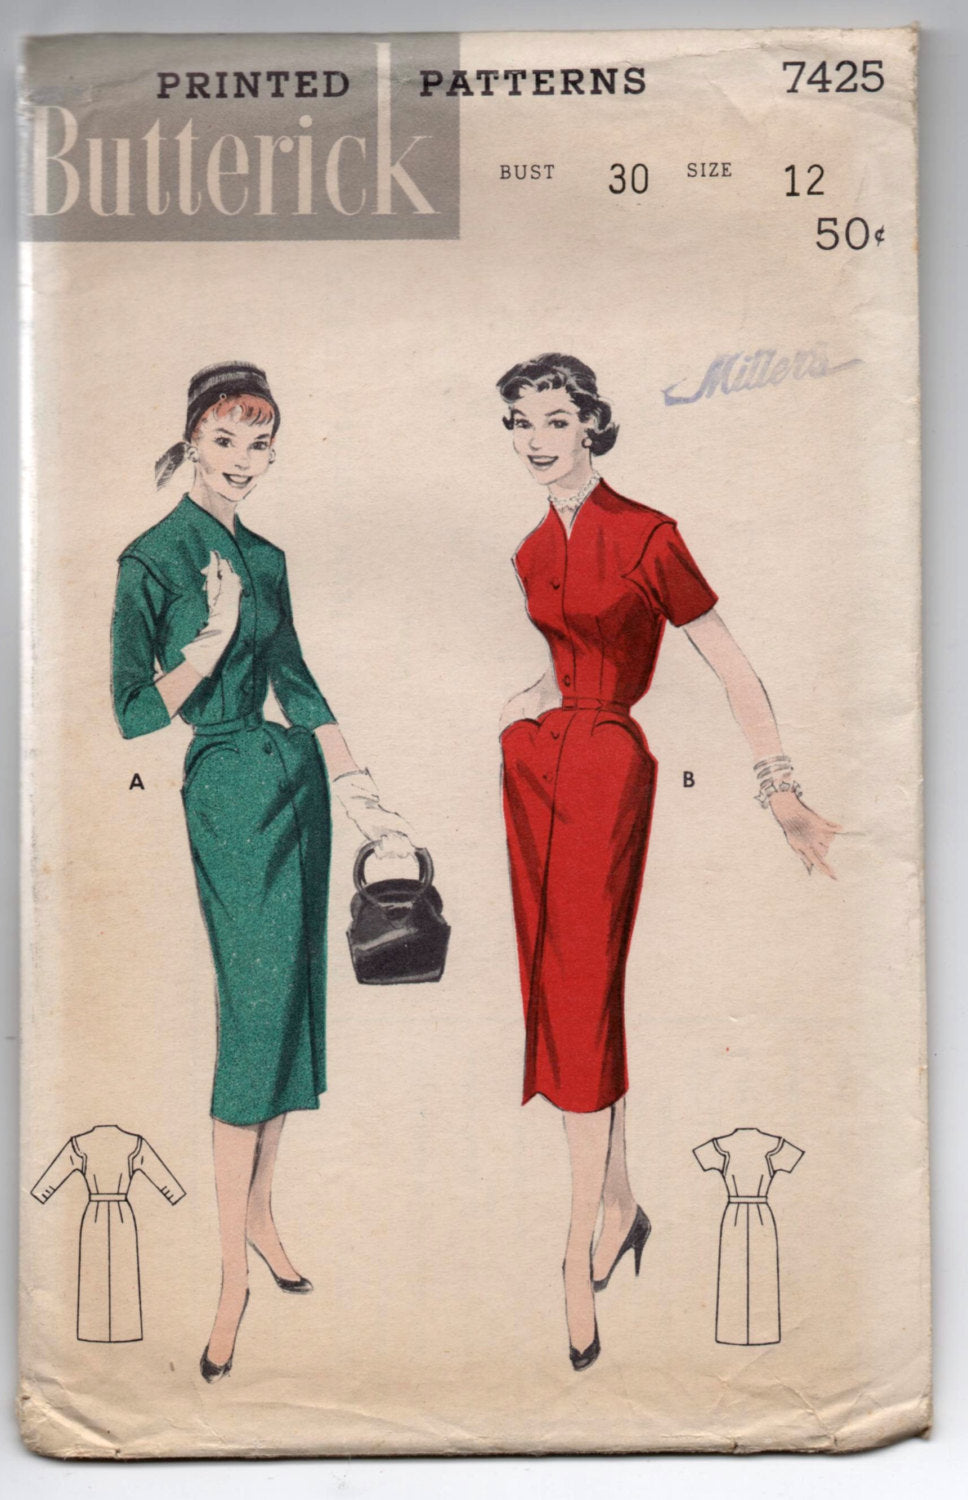 1950's Butterick One-Piece Dress with Pockets and decorative armseye Pattern - Bust 30